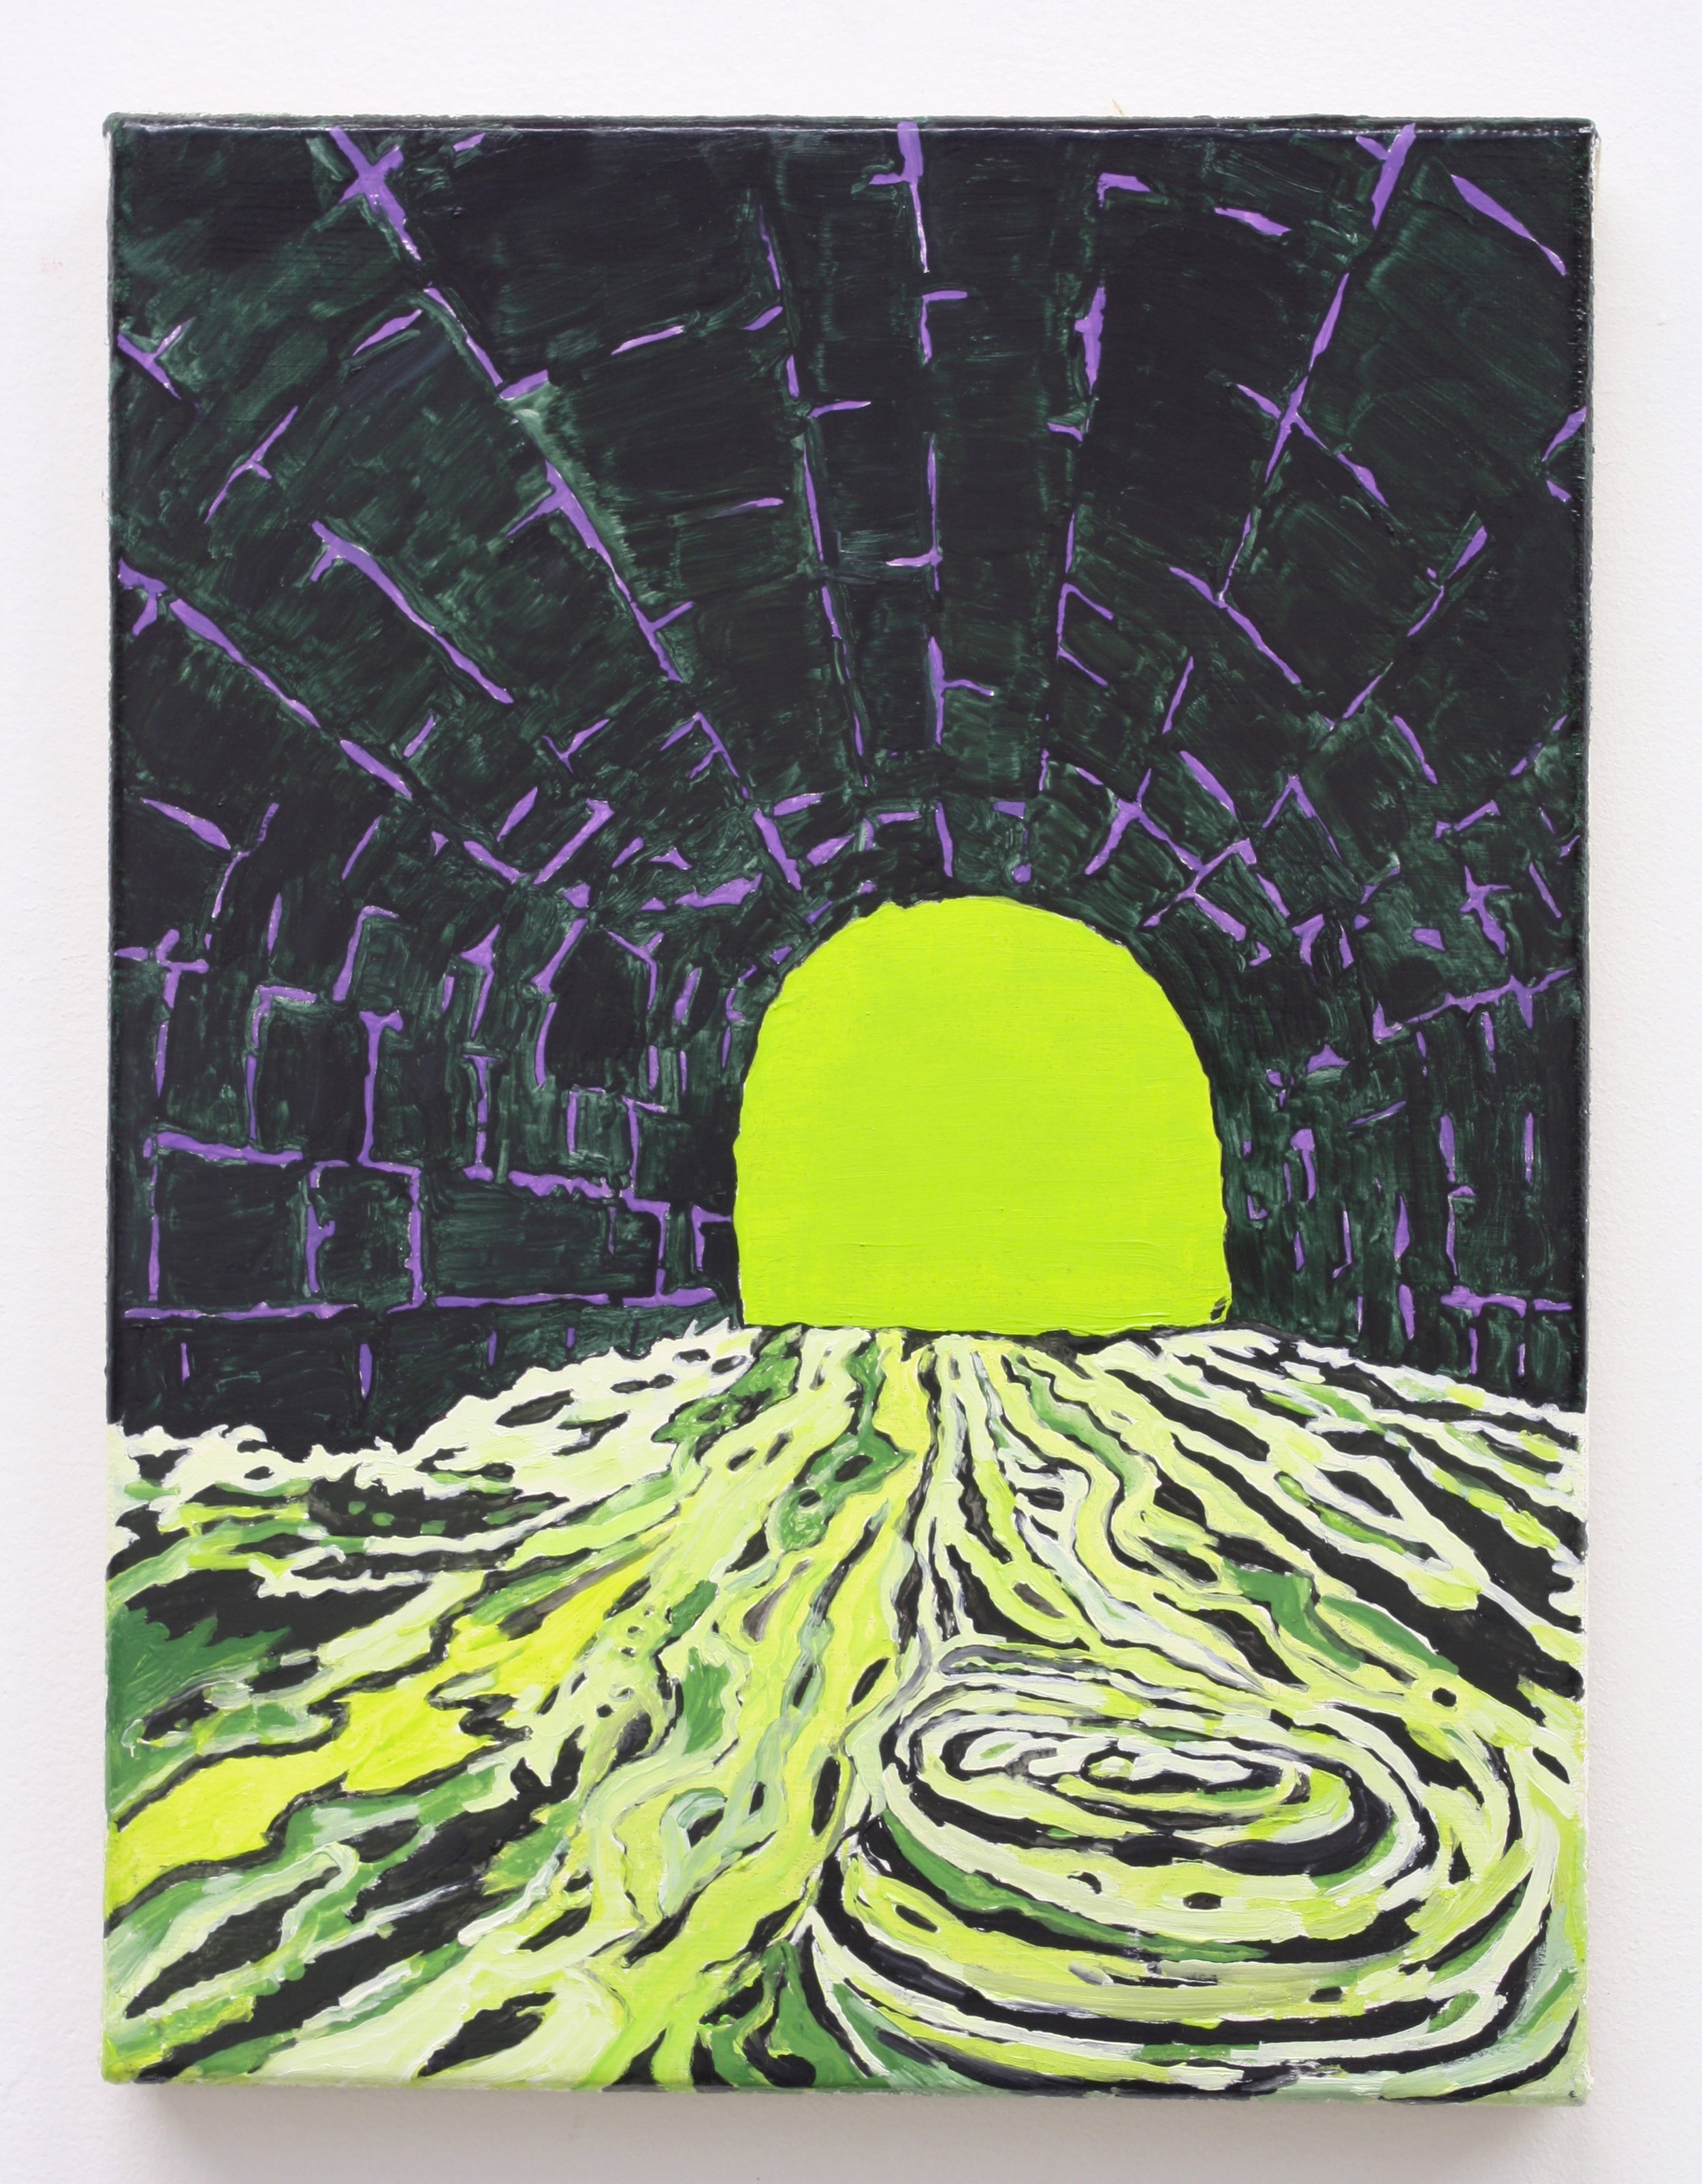 """Untitled, Tunnel"", 2014 , oil on Linen, 12 x 9 inches"